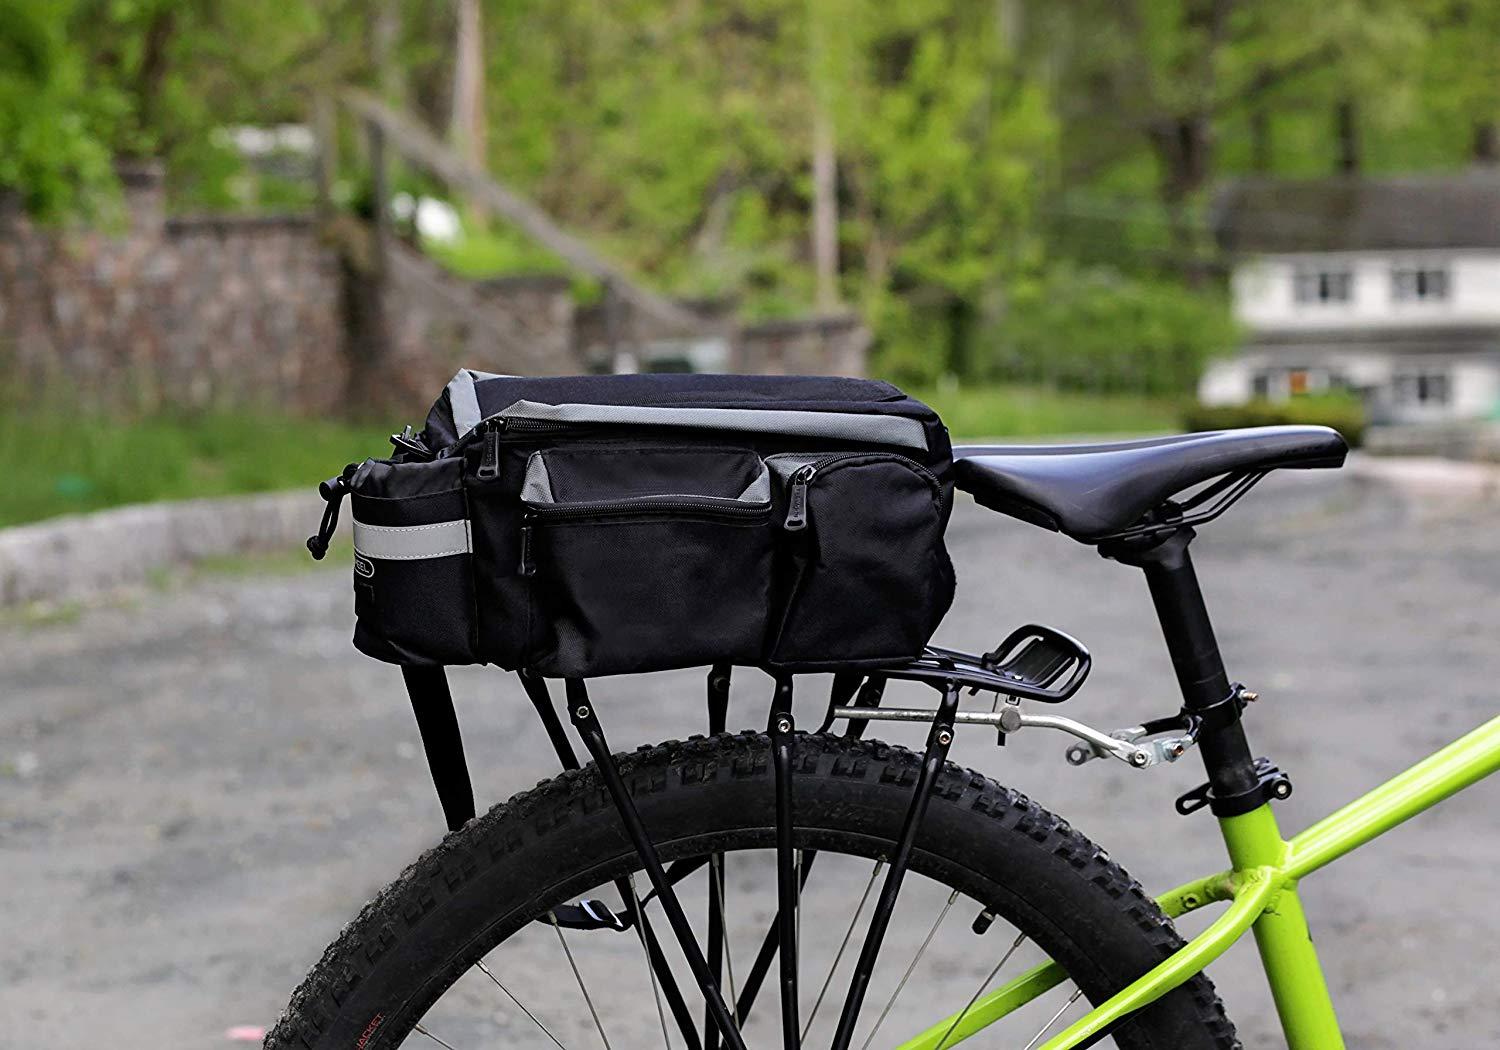 Pack Outdoorsy Supplies Car Scratch Protectors for Trunk Bike Rack